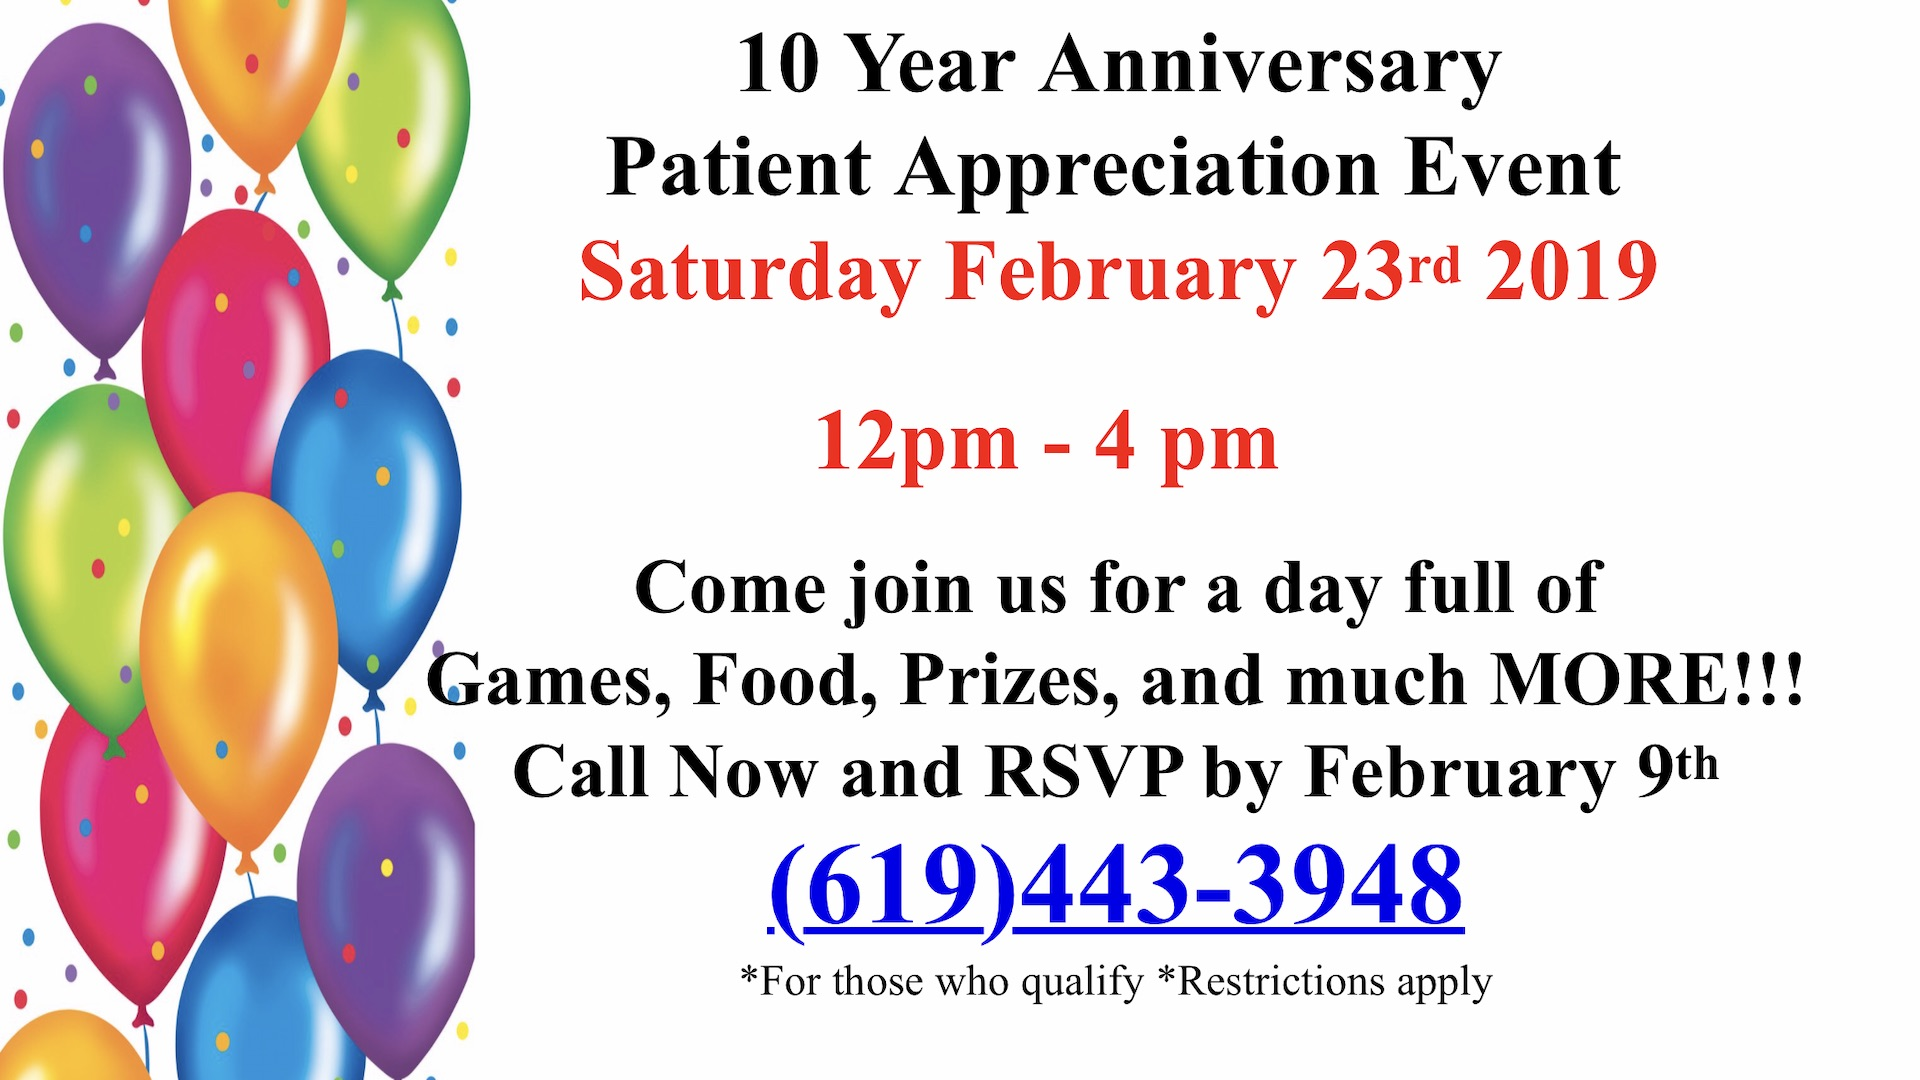 10 Year Anniversary - Patient Appreciation Event